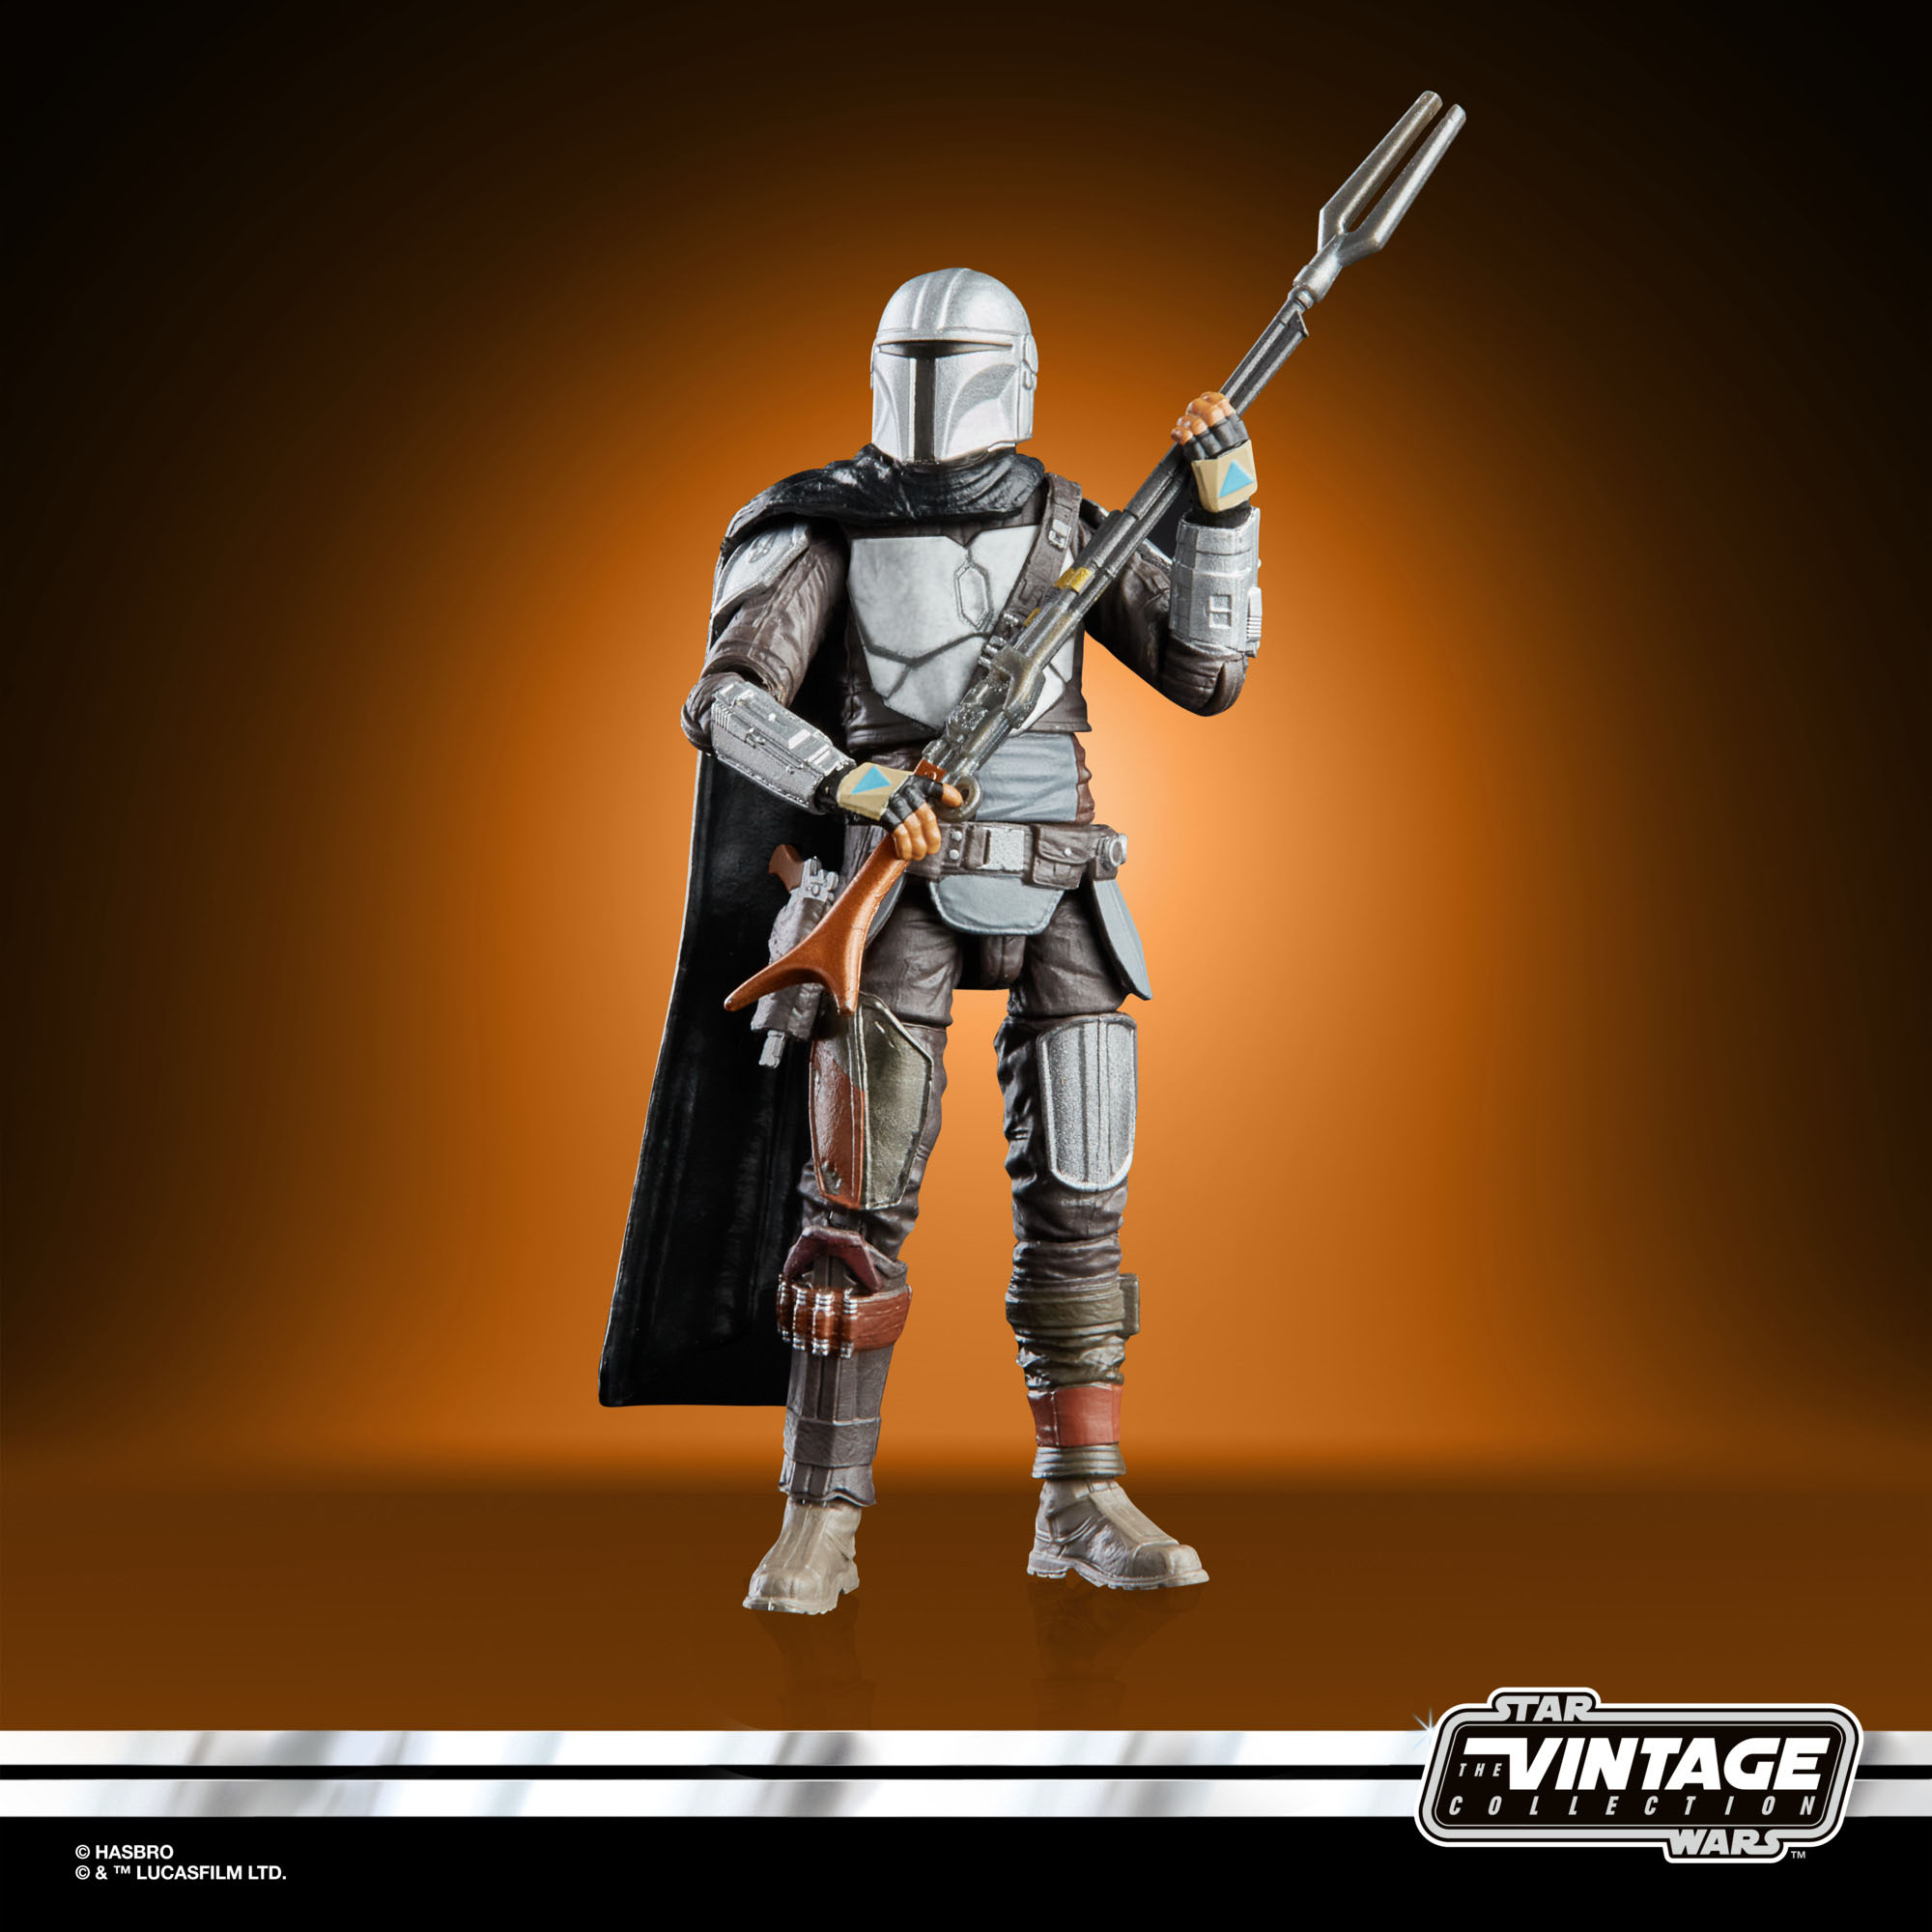 STAR WARS THE VINTAGE COLLECTION 3.75 INCH THE MANDALORIAN oop 2